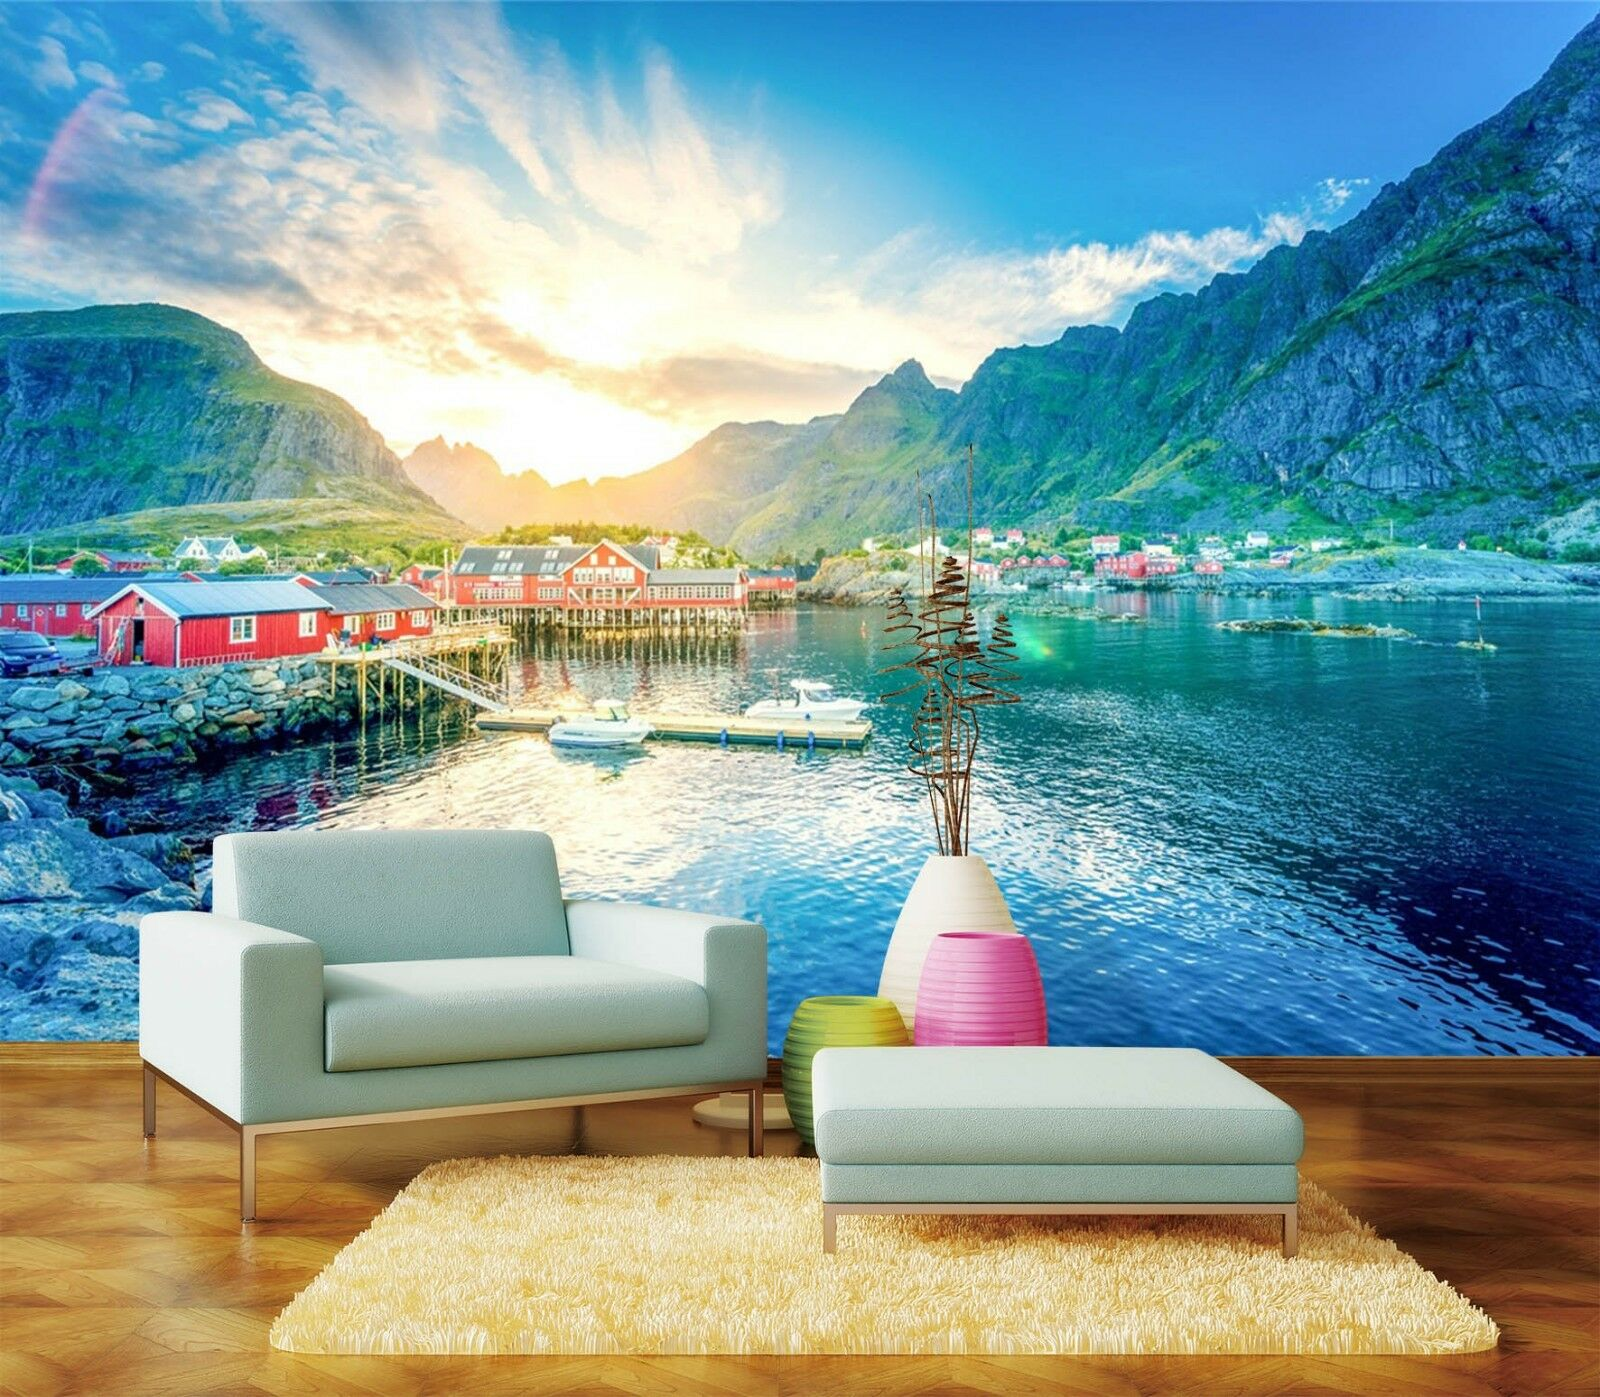 3D sunlight Lake water house Wall Paper Print Decal Wall Deco Indoor wall Mural